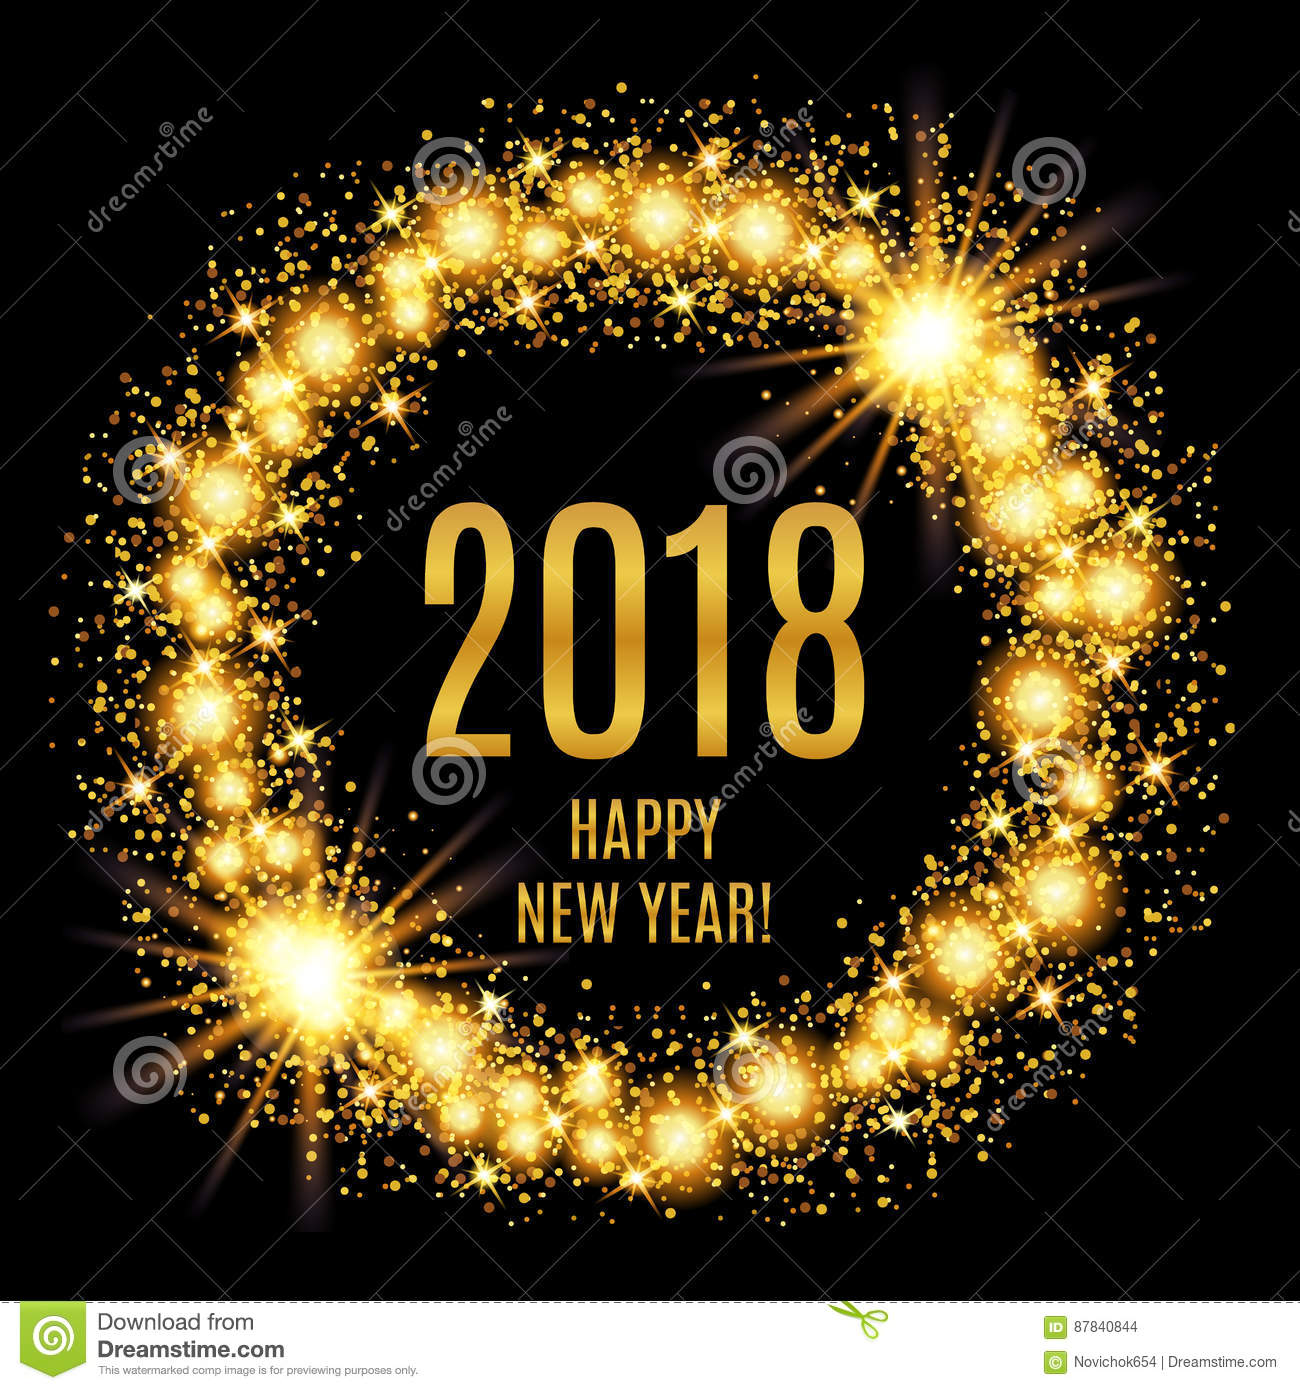 2018 Happy New Year glowing gold background.